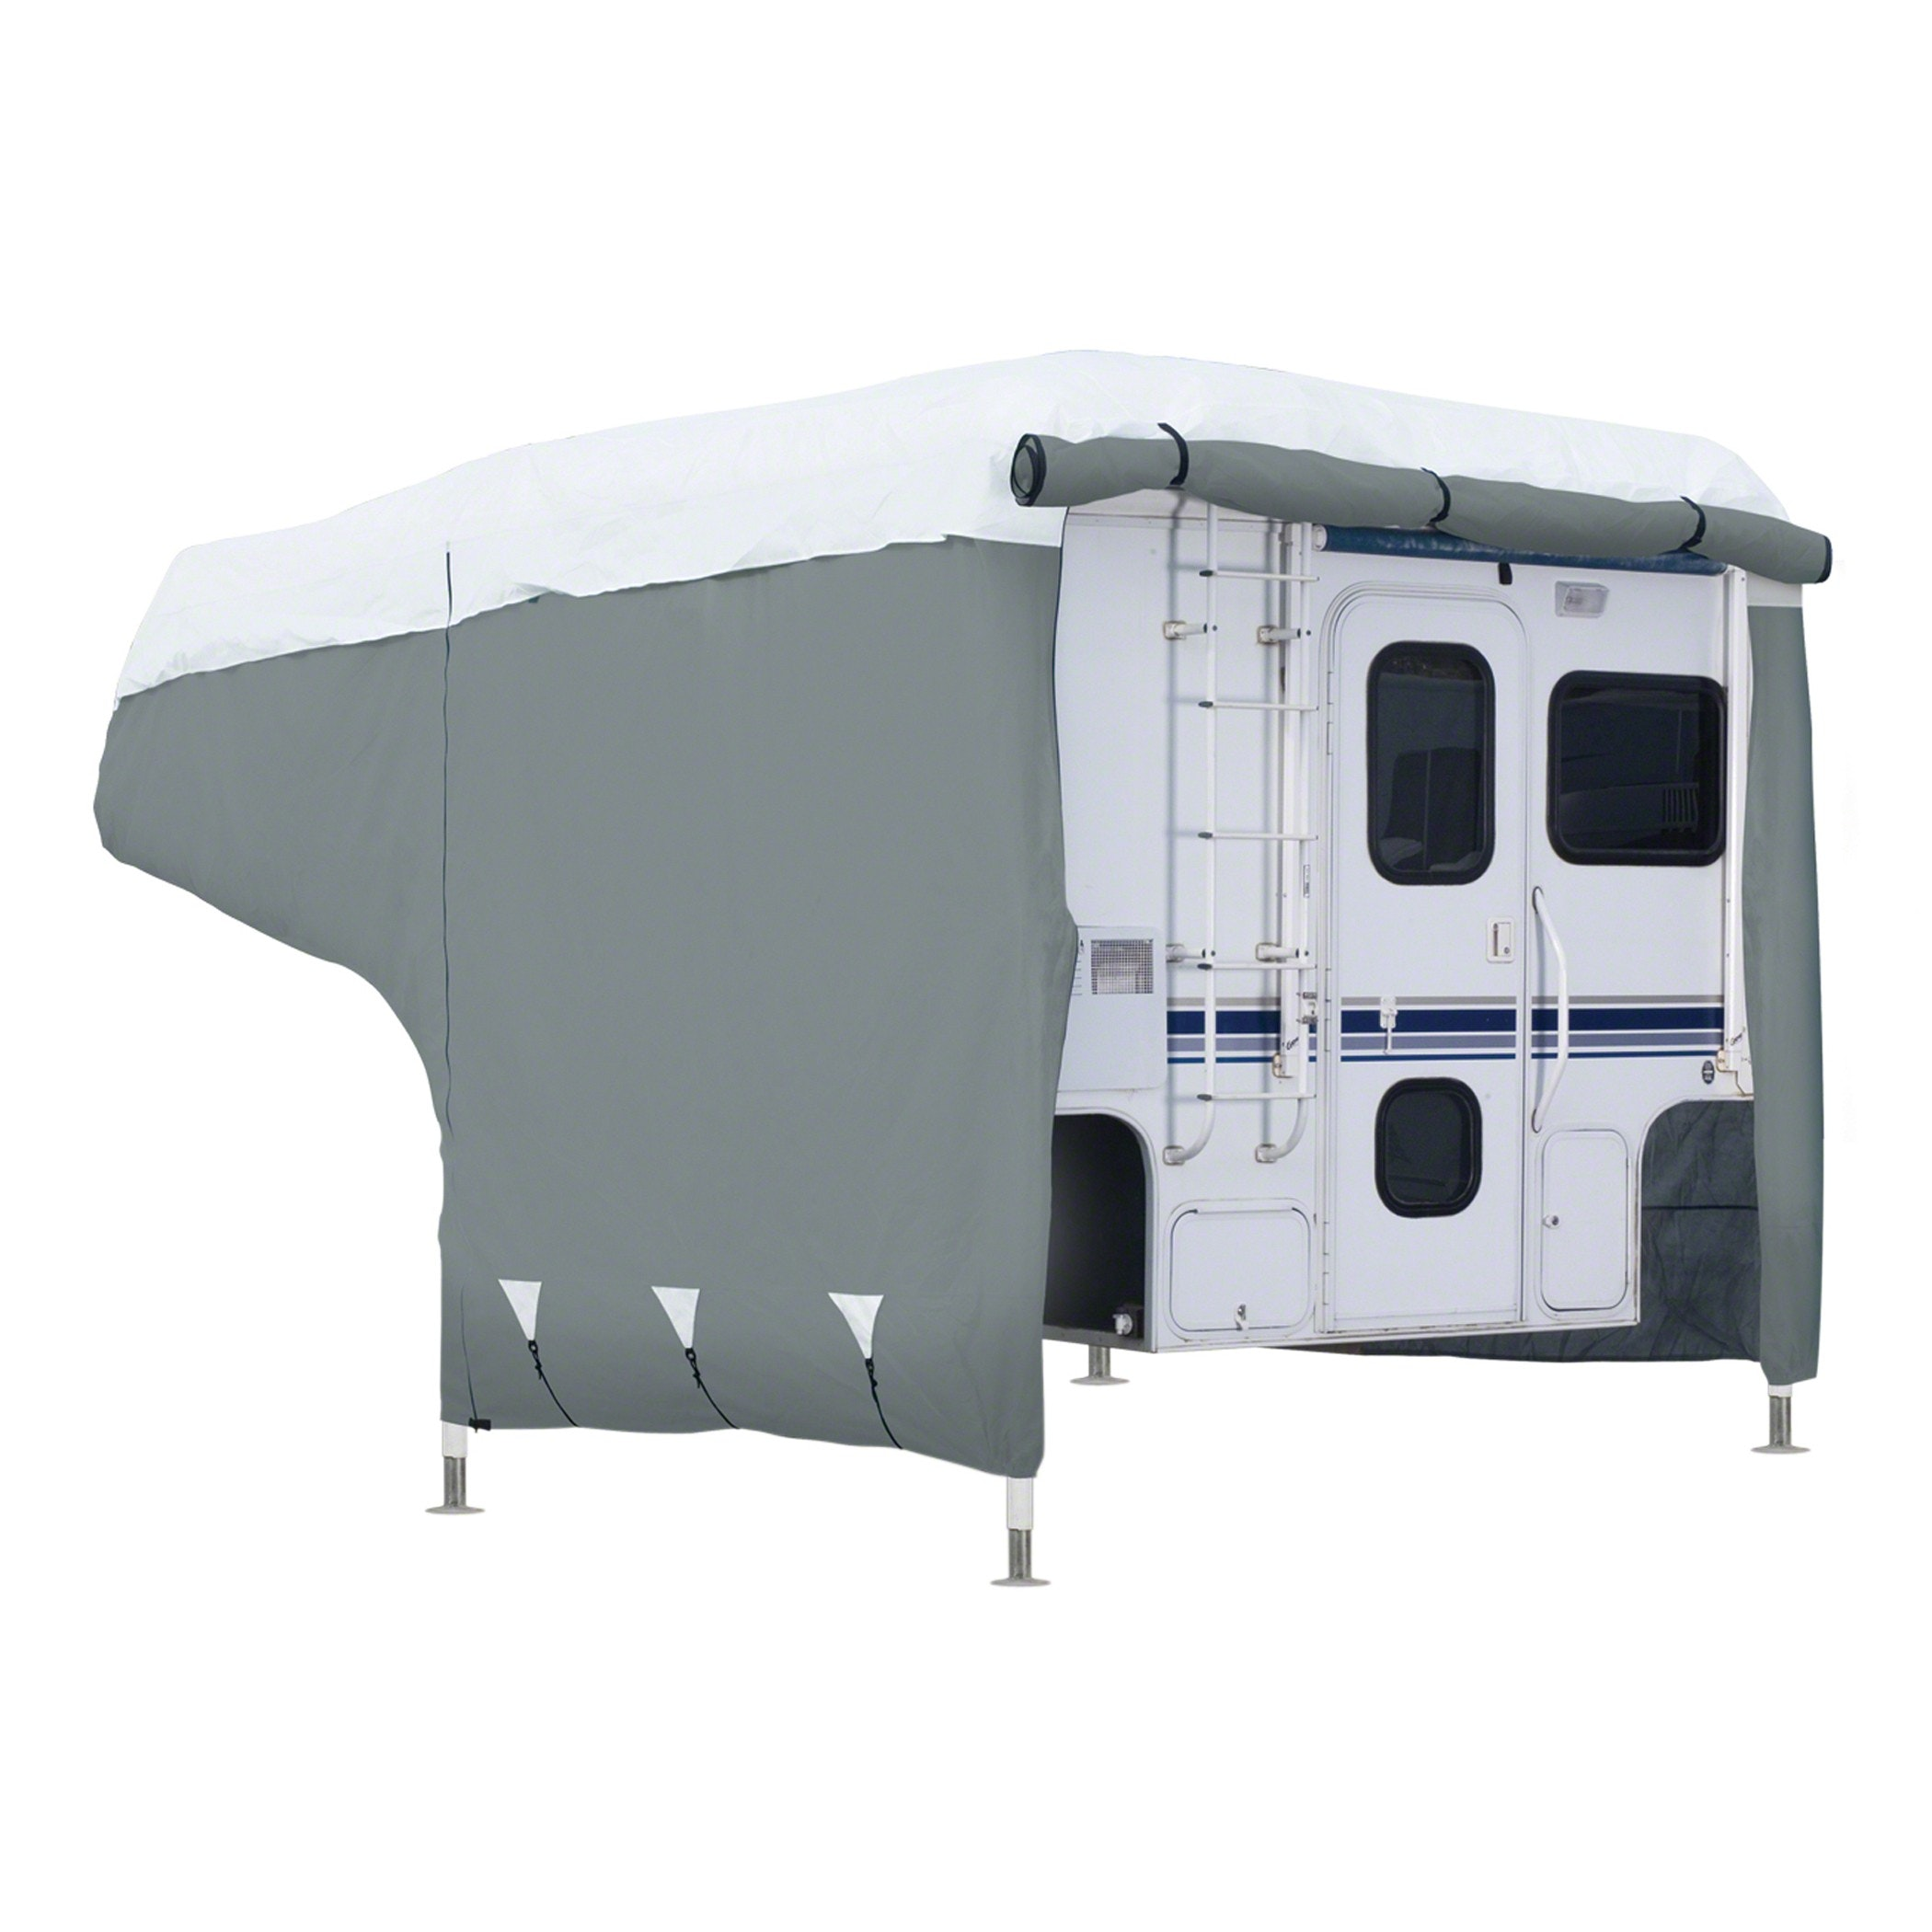 Product Image for Classic Classic PolyPRO 3 6' - 8' Slide-in Truck Camper RV Cover Rv